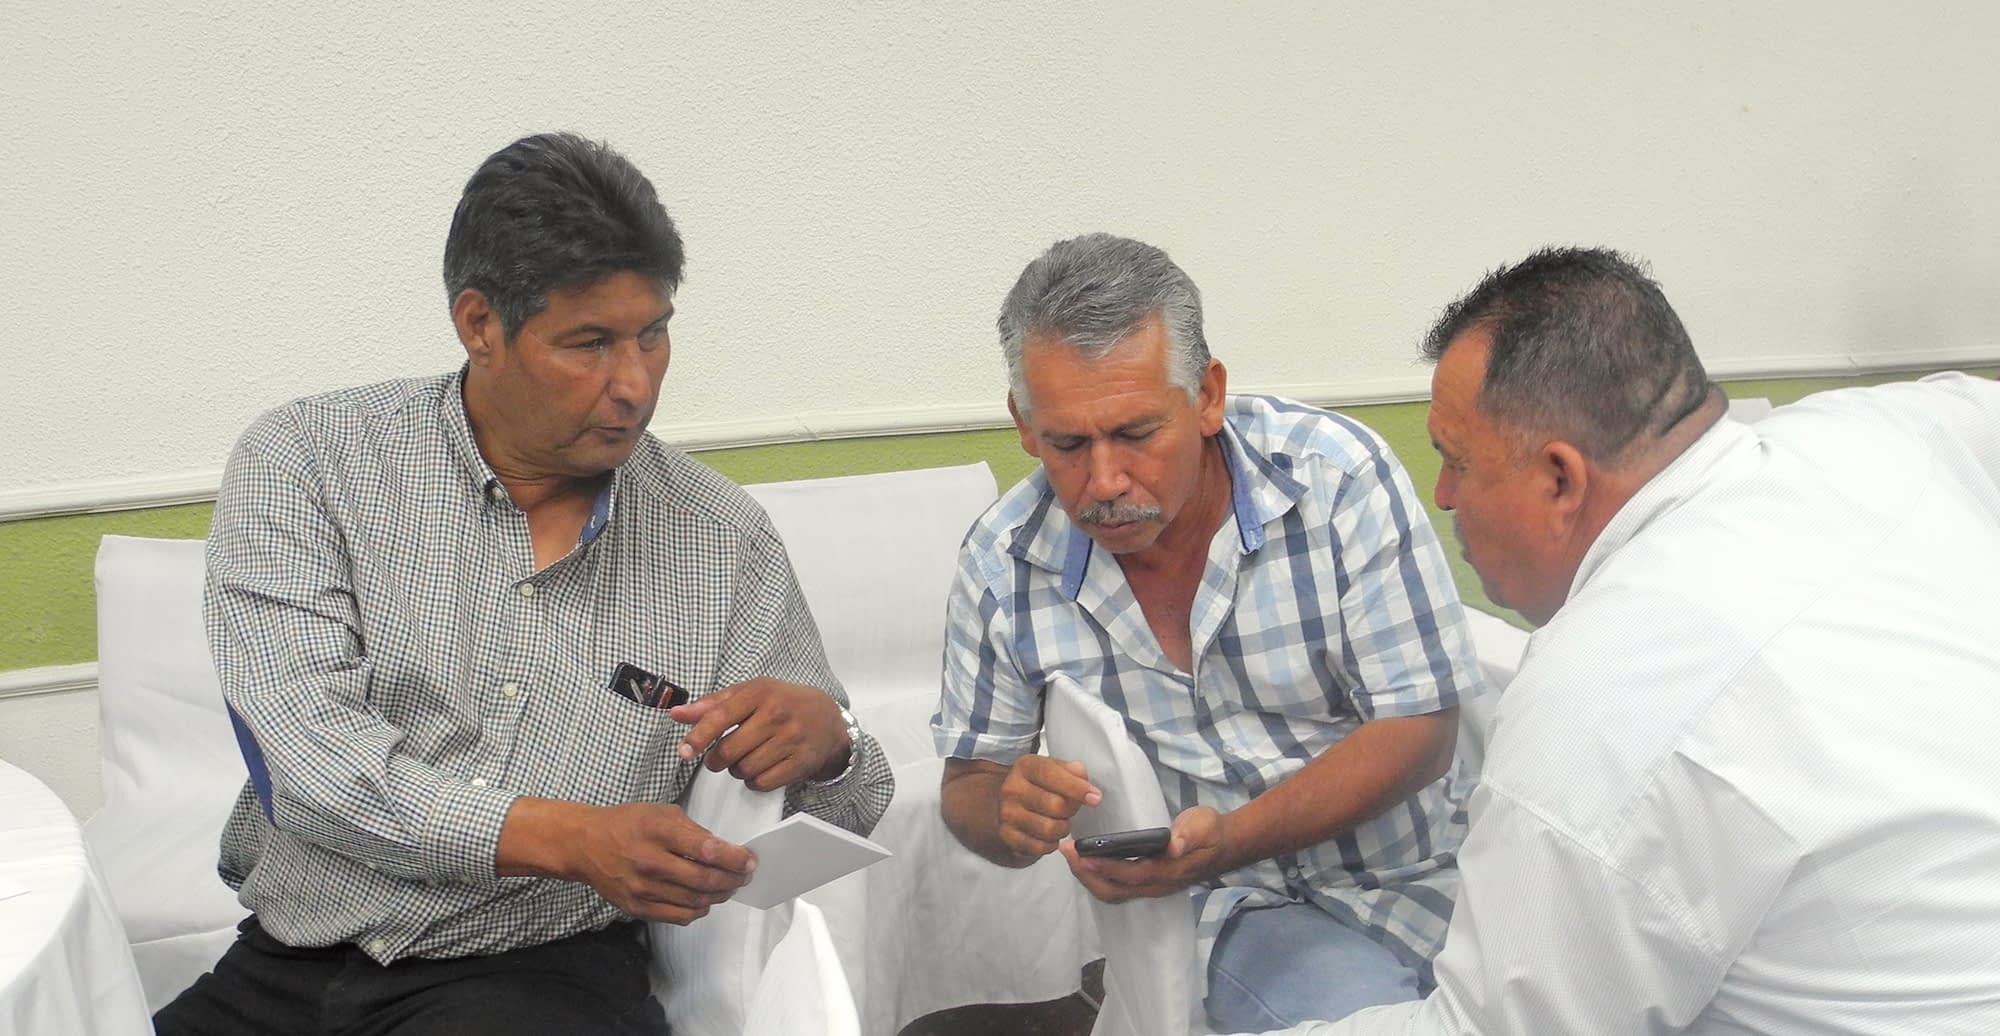 Local farmers test out the COMPASS smartphone app at the workshop in Ciudad Obregon, Sonora state, Mexico. (Photo: Alison Doody/CIMMYT)